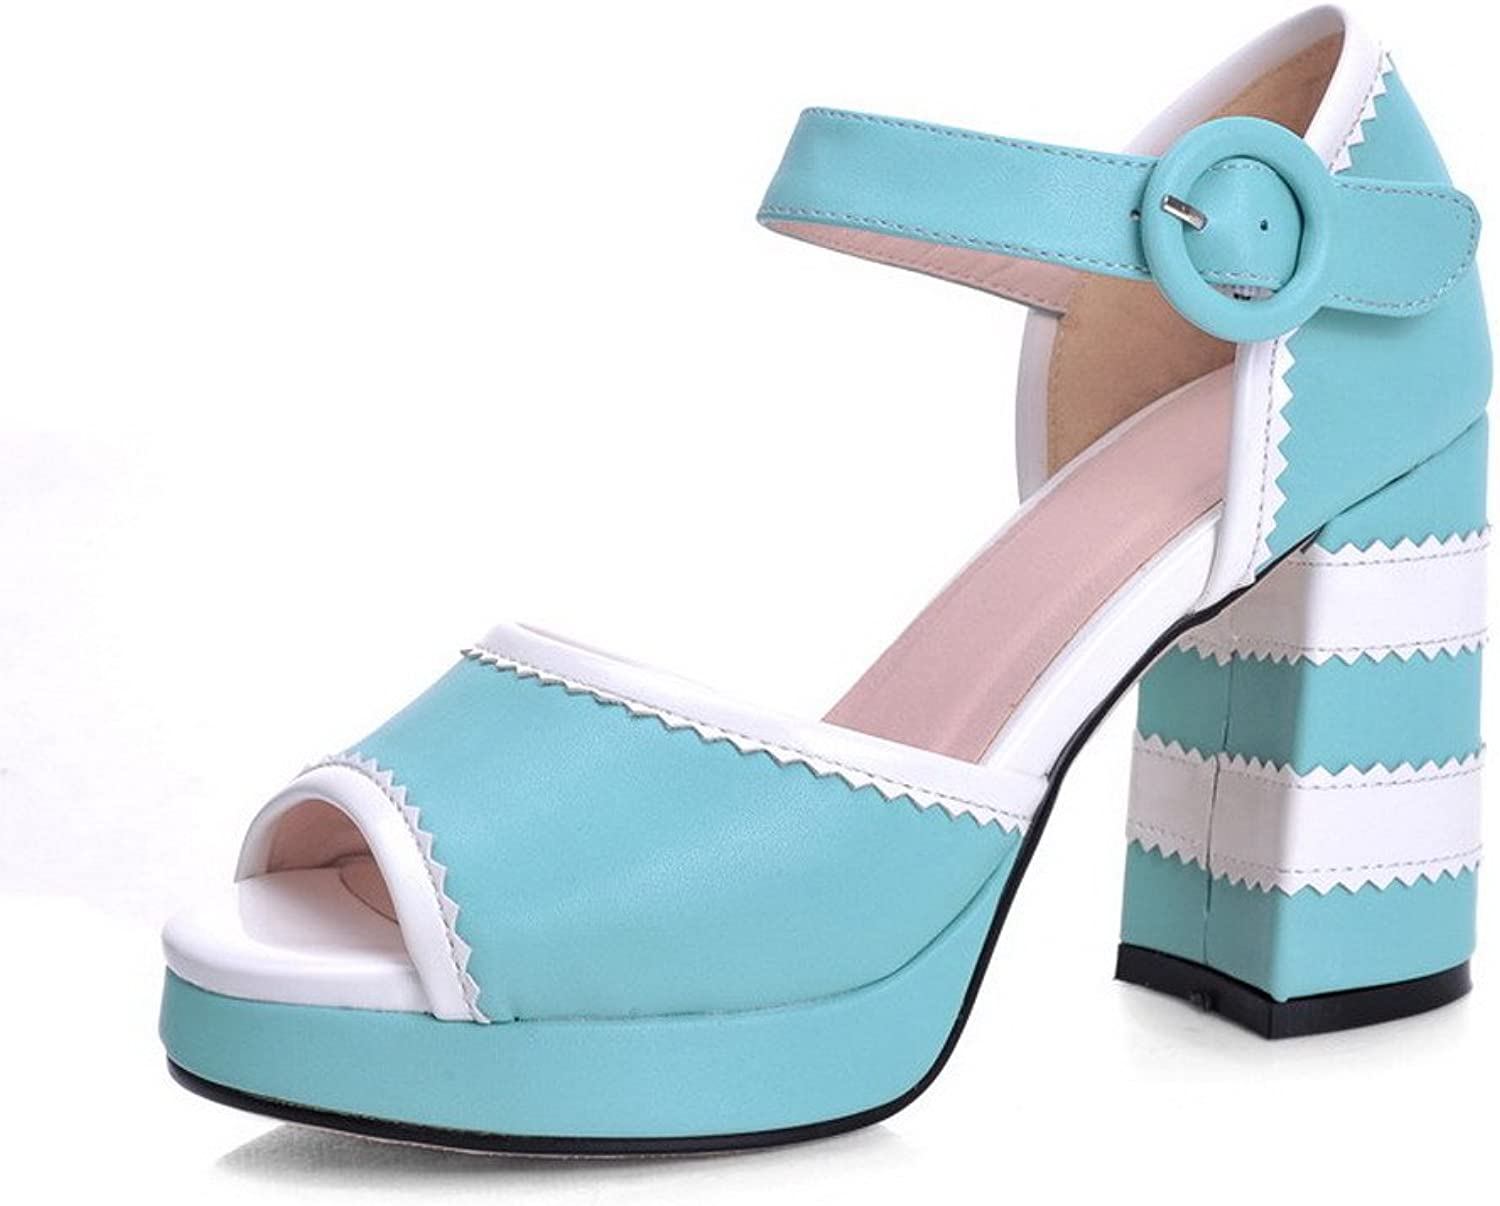 WeiPoot Women Peep Toe High Heel PU Soft Material Sandals with Assorted colors Sandals, bluee, 7.5 B(M) US